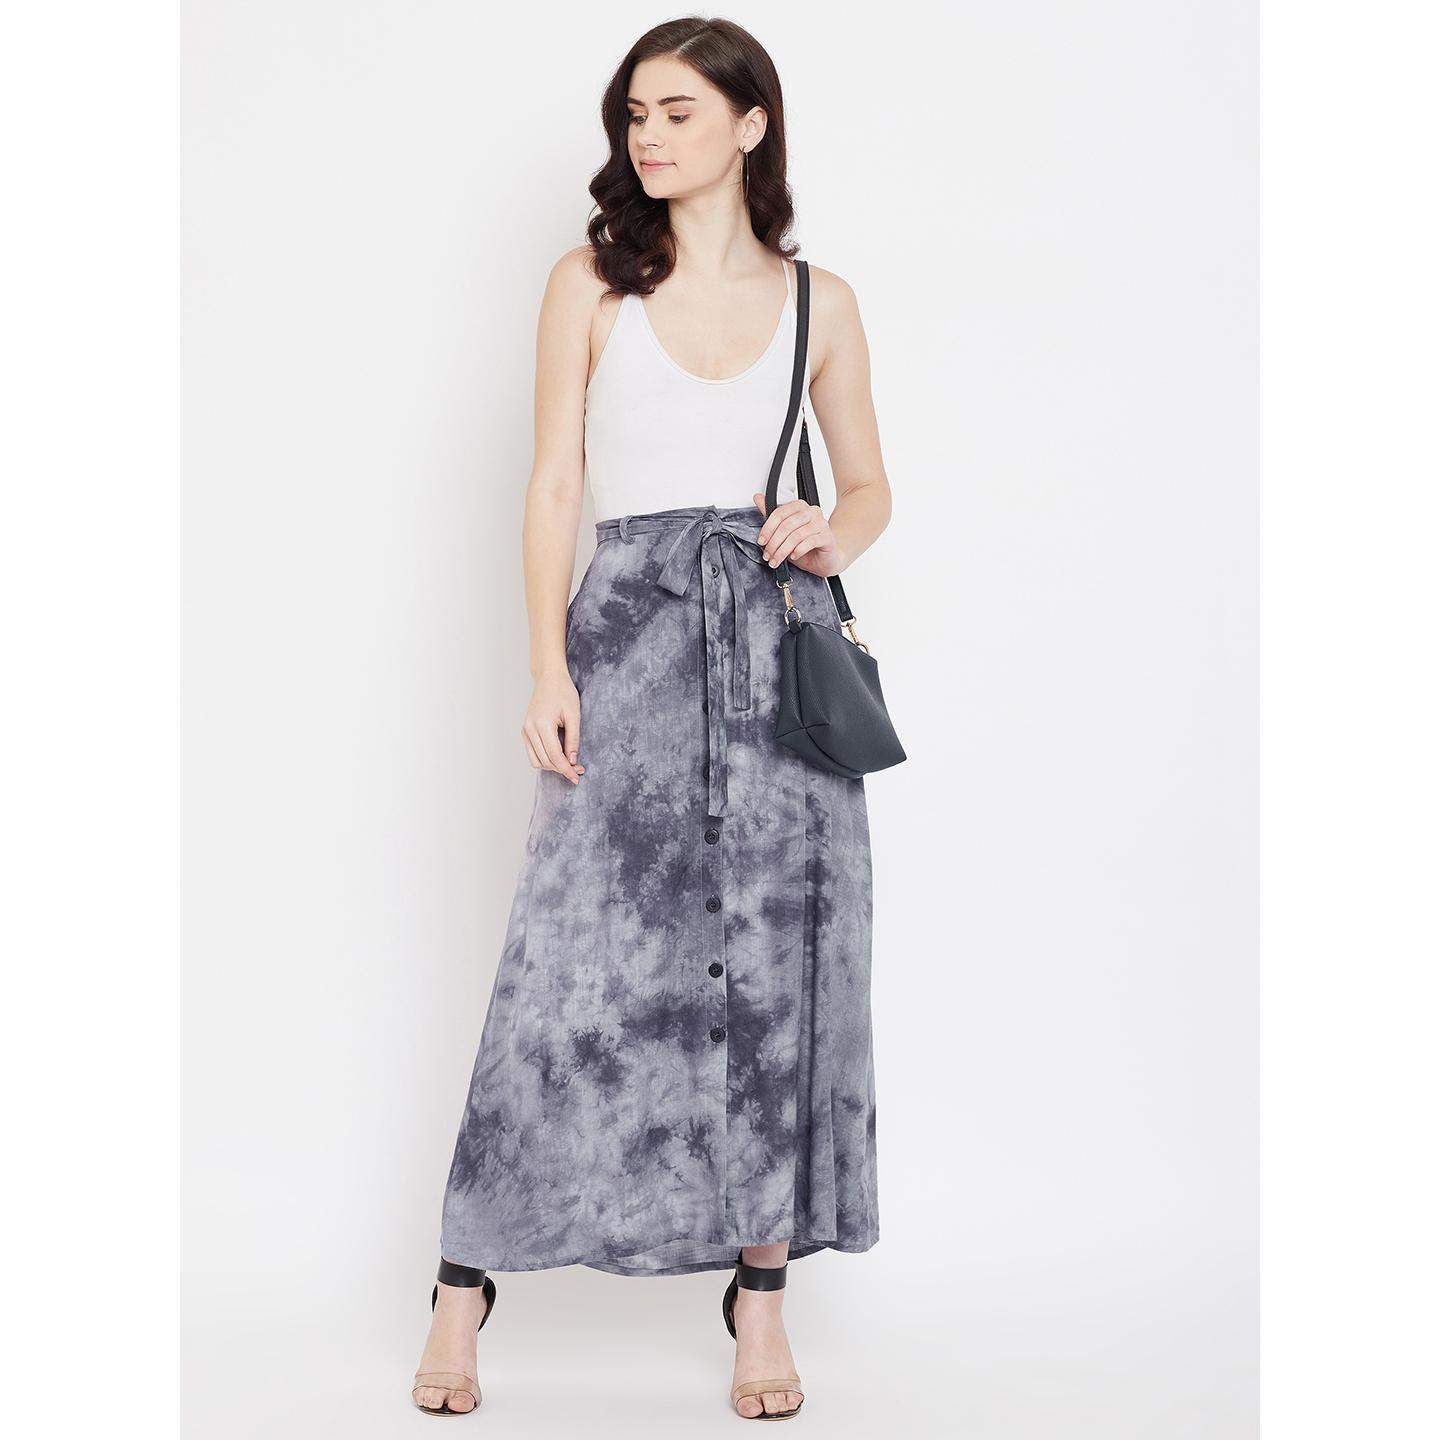 Lucero - Grey Colored Casual Printed Tie & Dye Button Self Fabric Belt Down Viscose Rayon Skirt